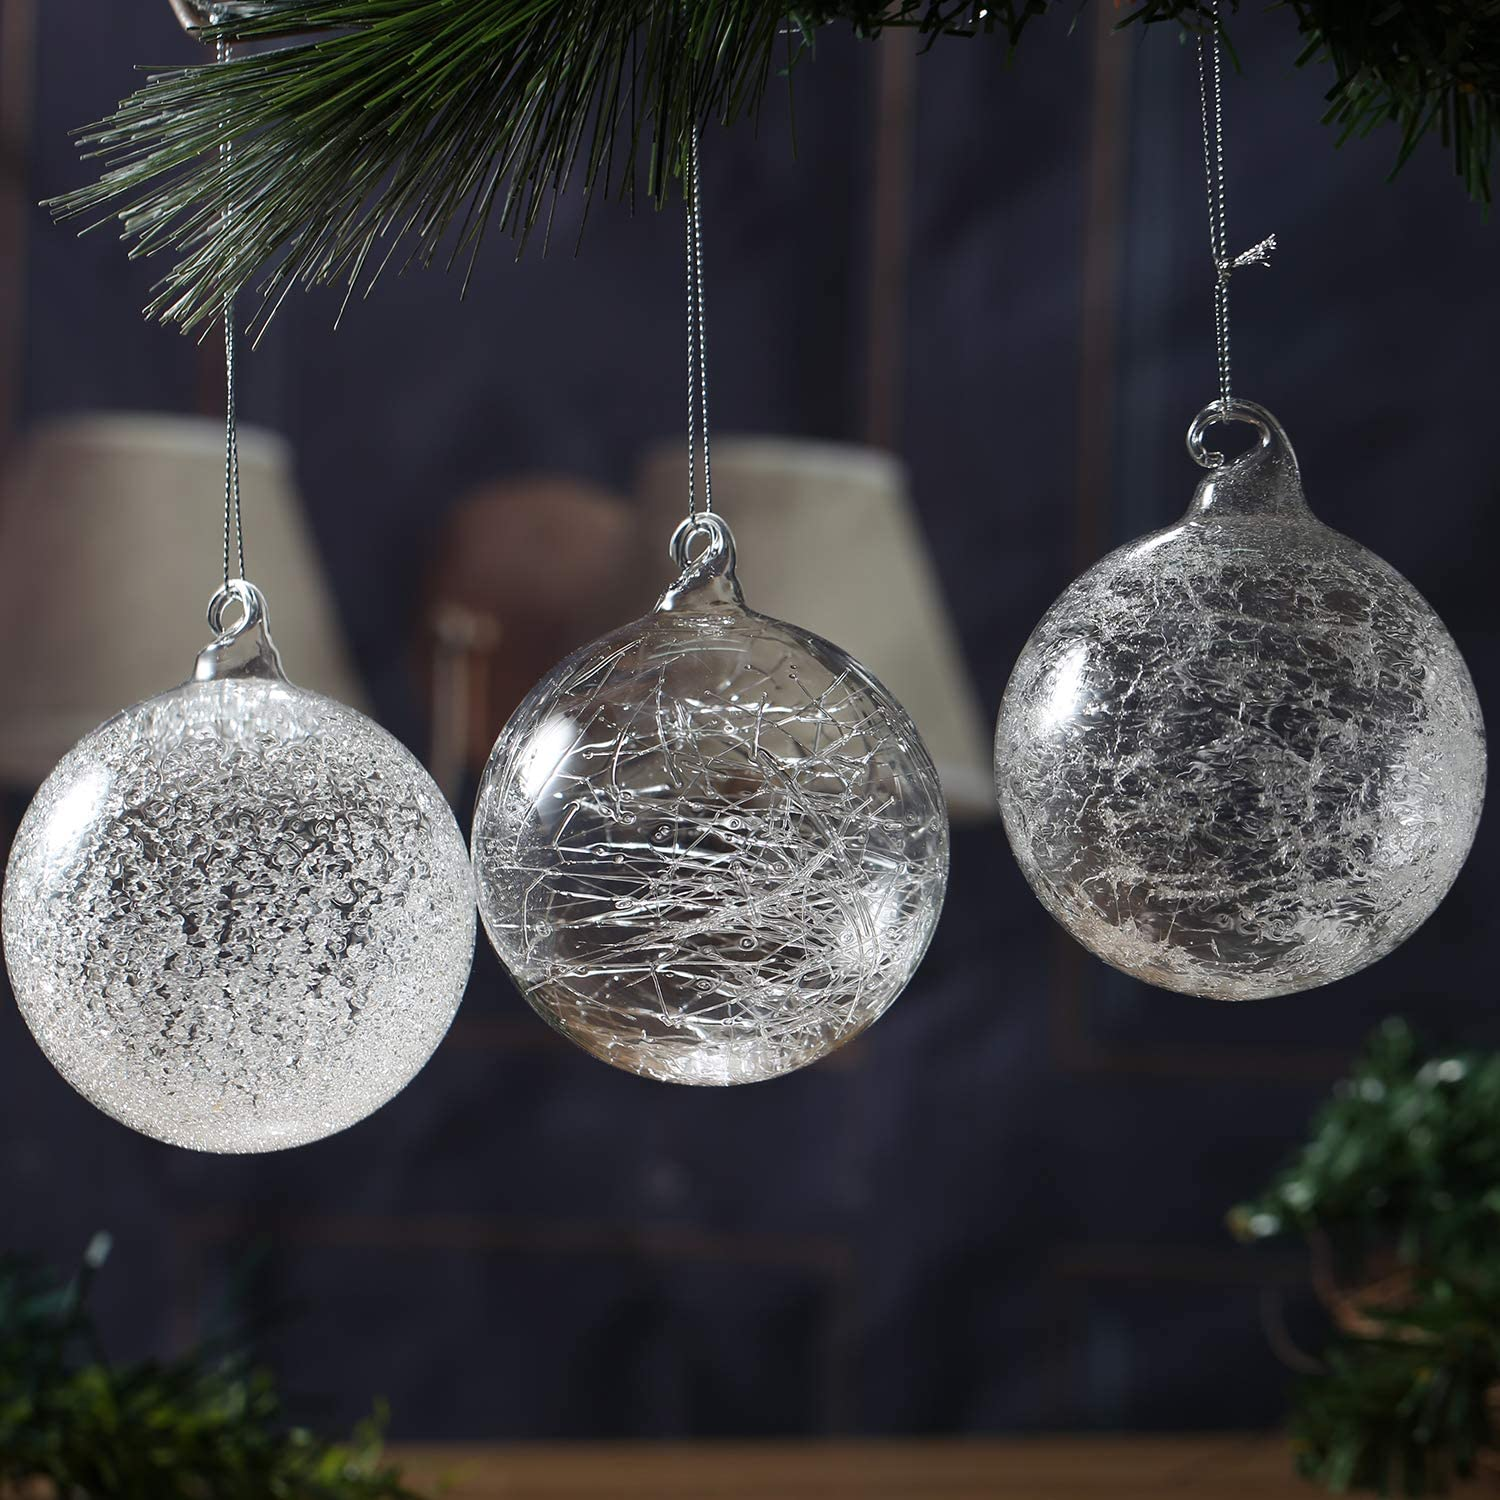 Decorating Clear Glass Christmas Ornaments  from images-na.ssl-images-amazon.com